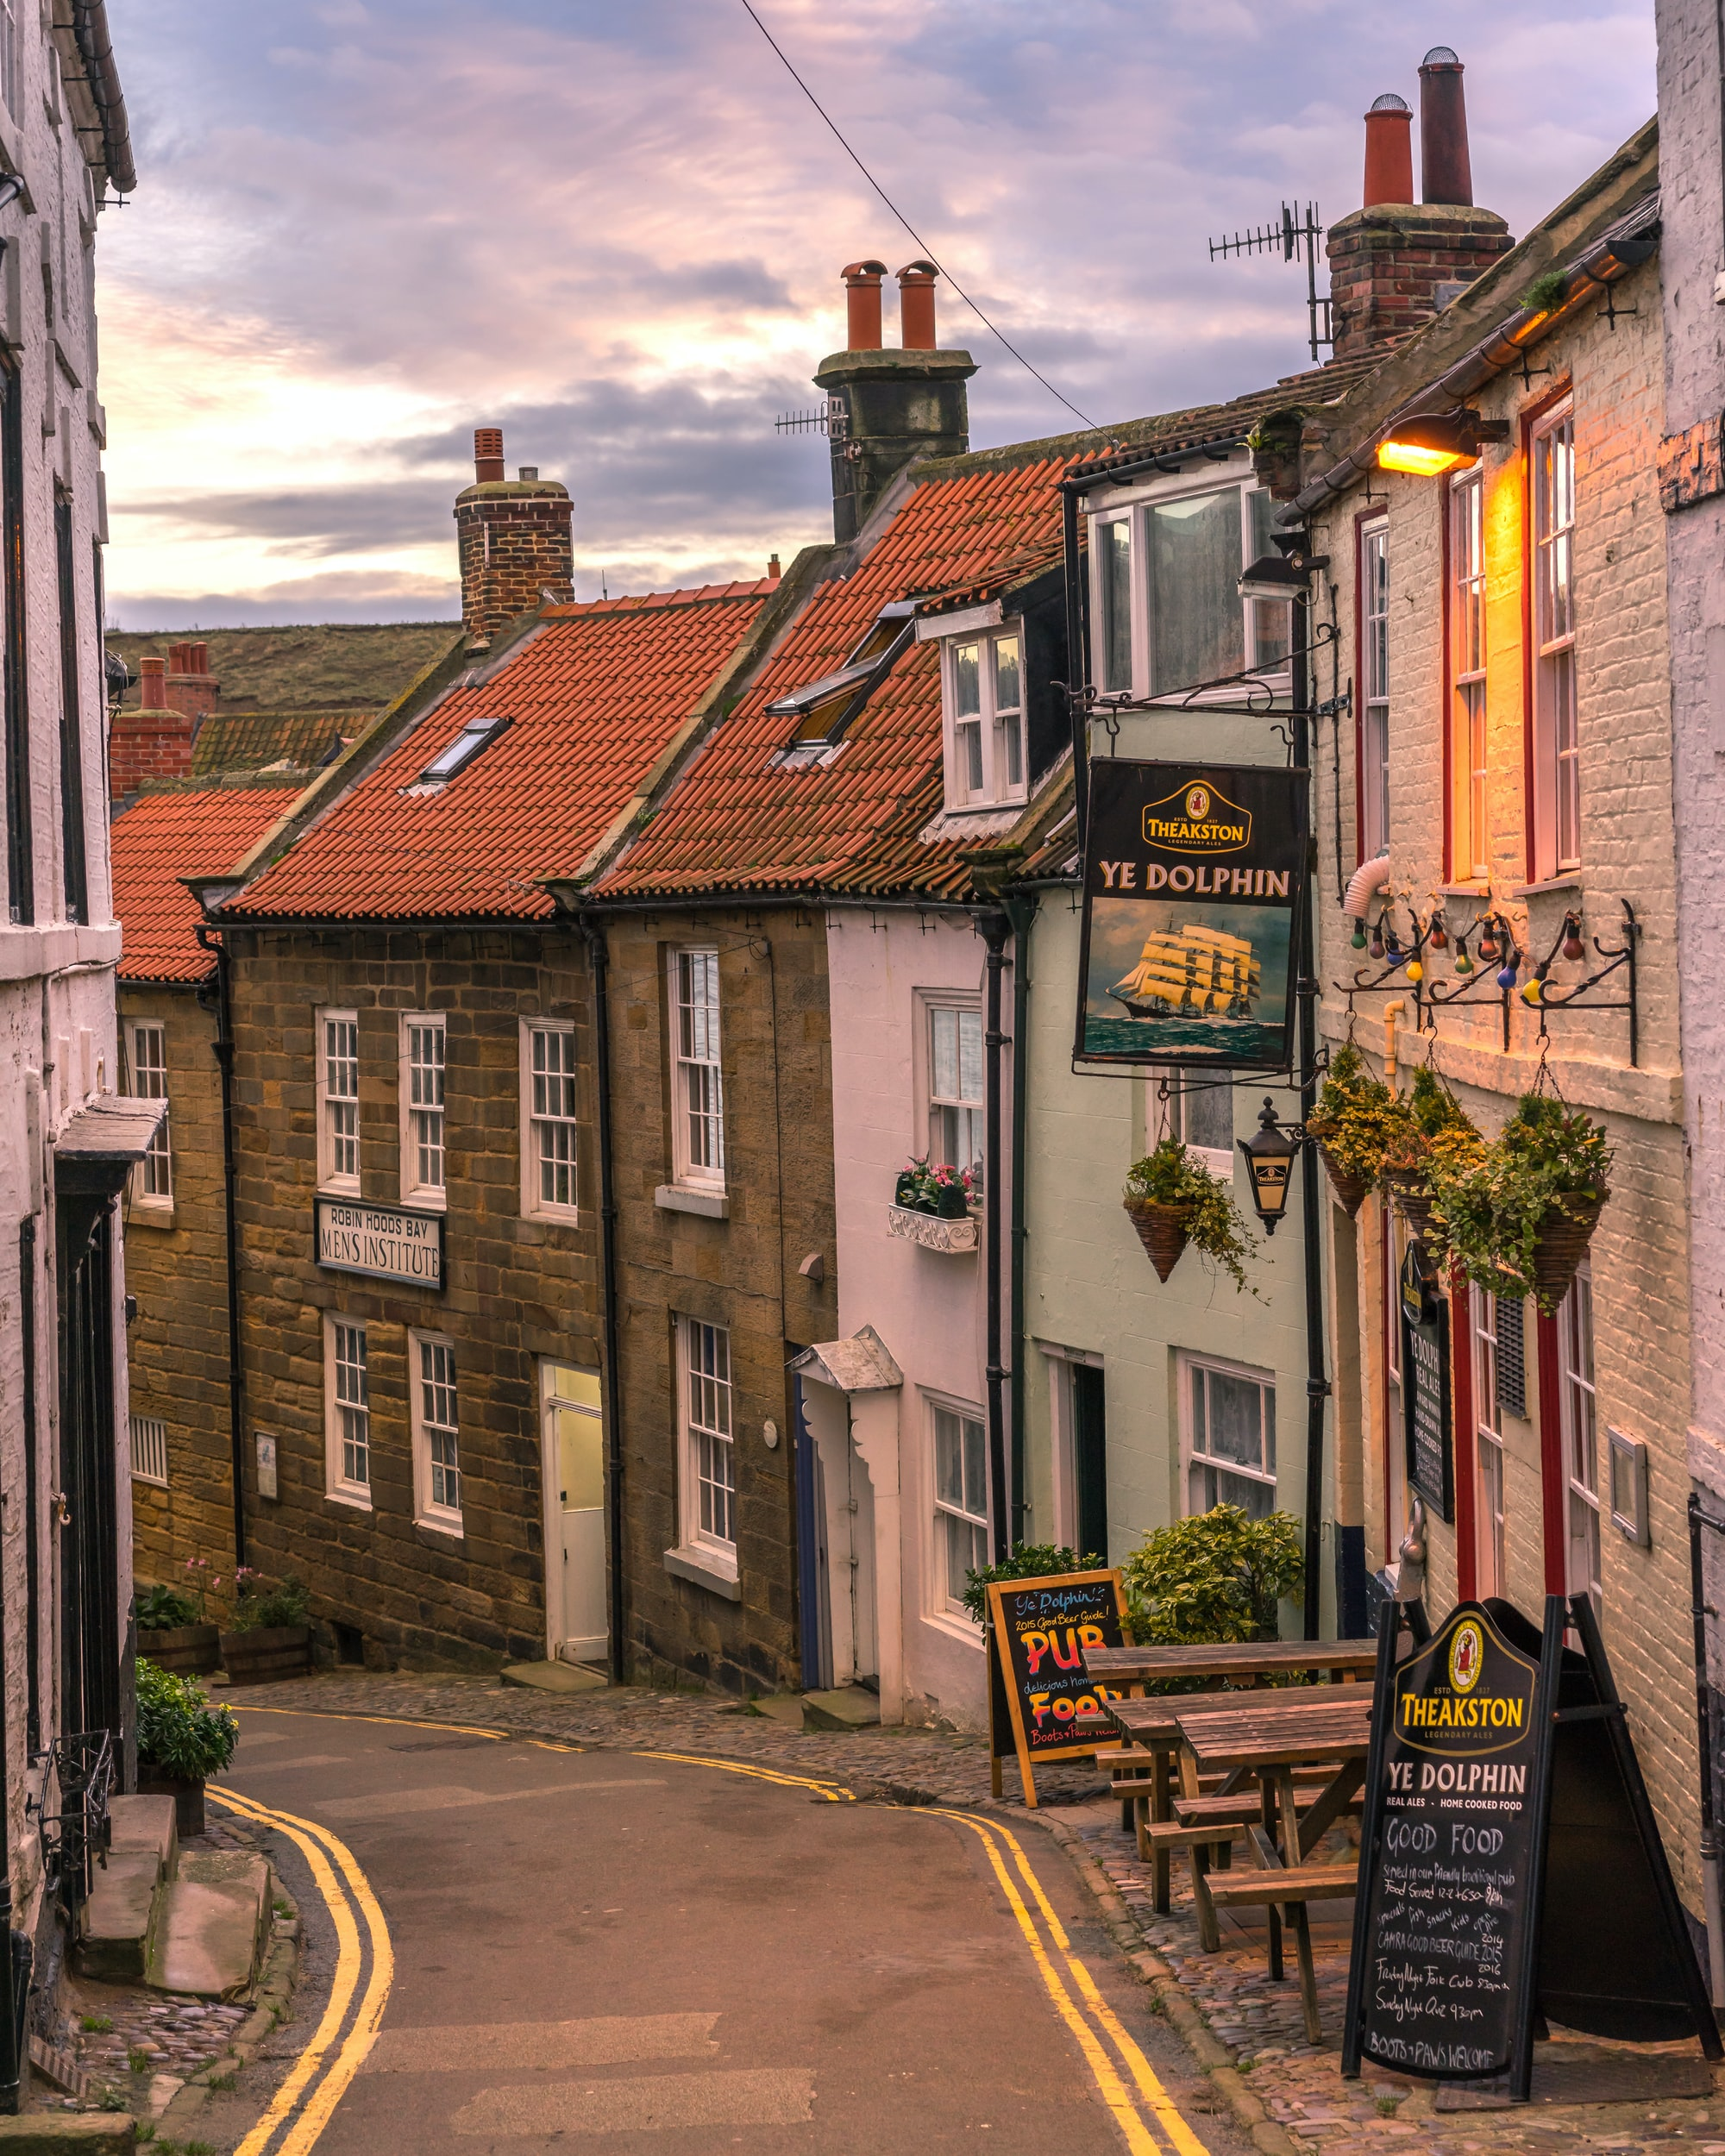 Ye Dolphin pub in Robin Hood's Bay. Traditional English pub very close to the sea on the east coast of England.   Photo by Michael Cummins Photography at www.michaelcummns.co.uk